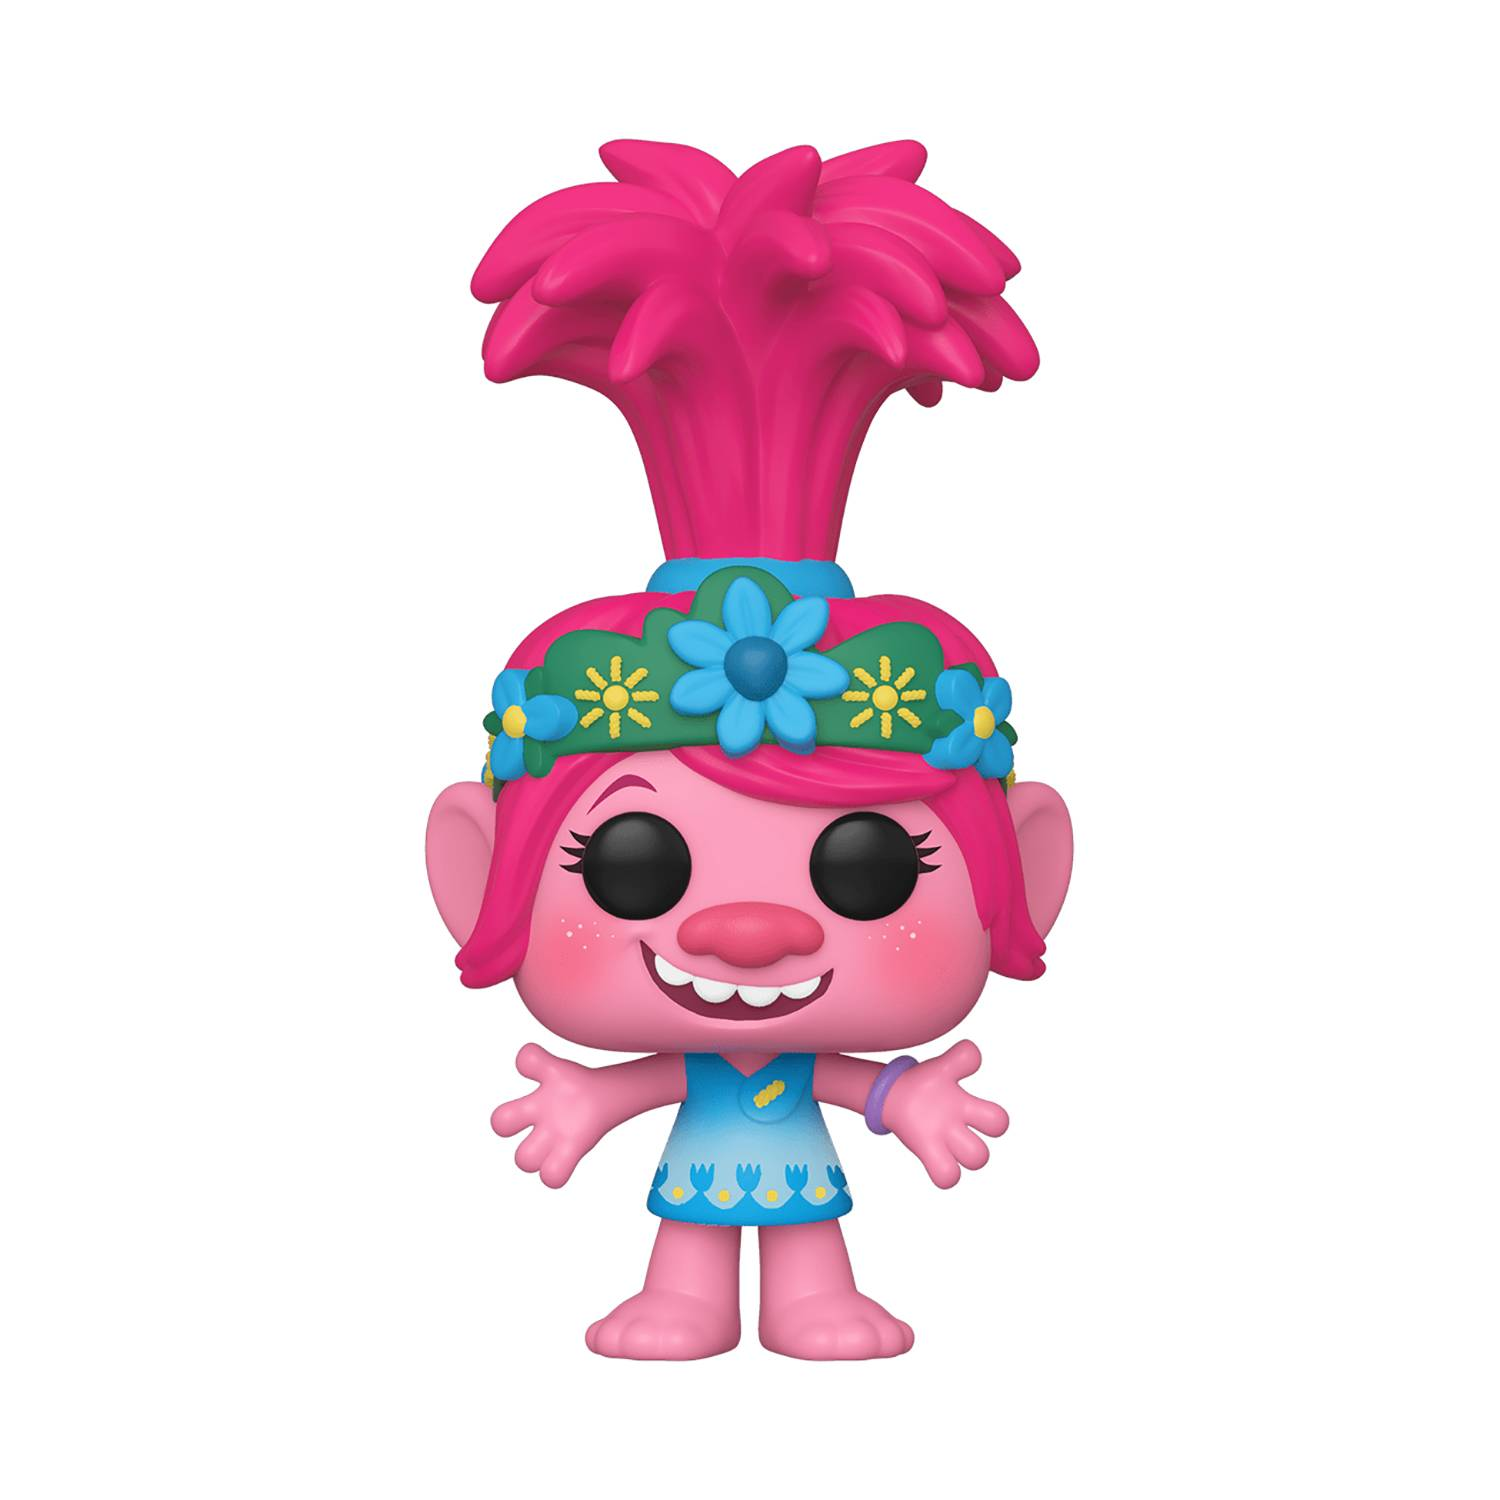 POP MOVIES TROLLS WORLD TOUR POPPY VIN FIG